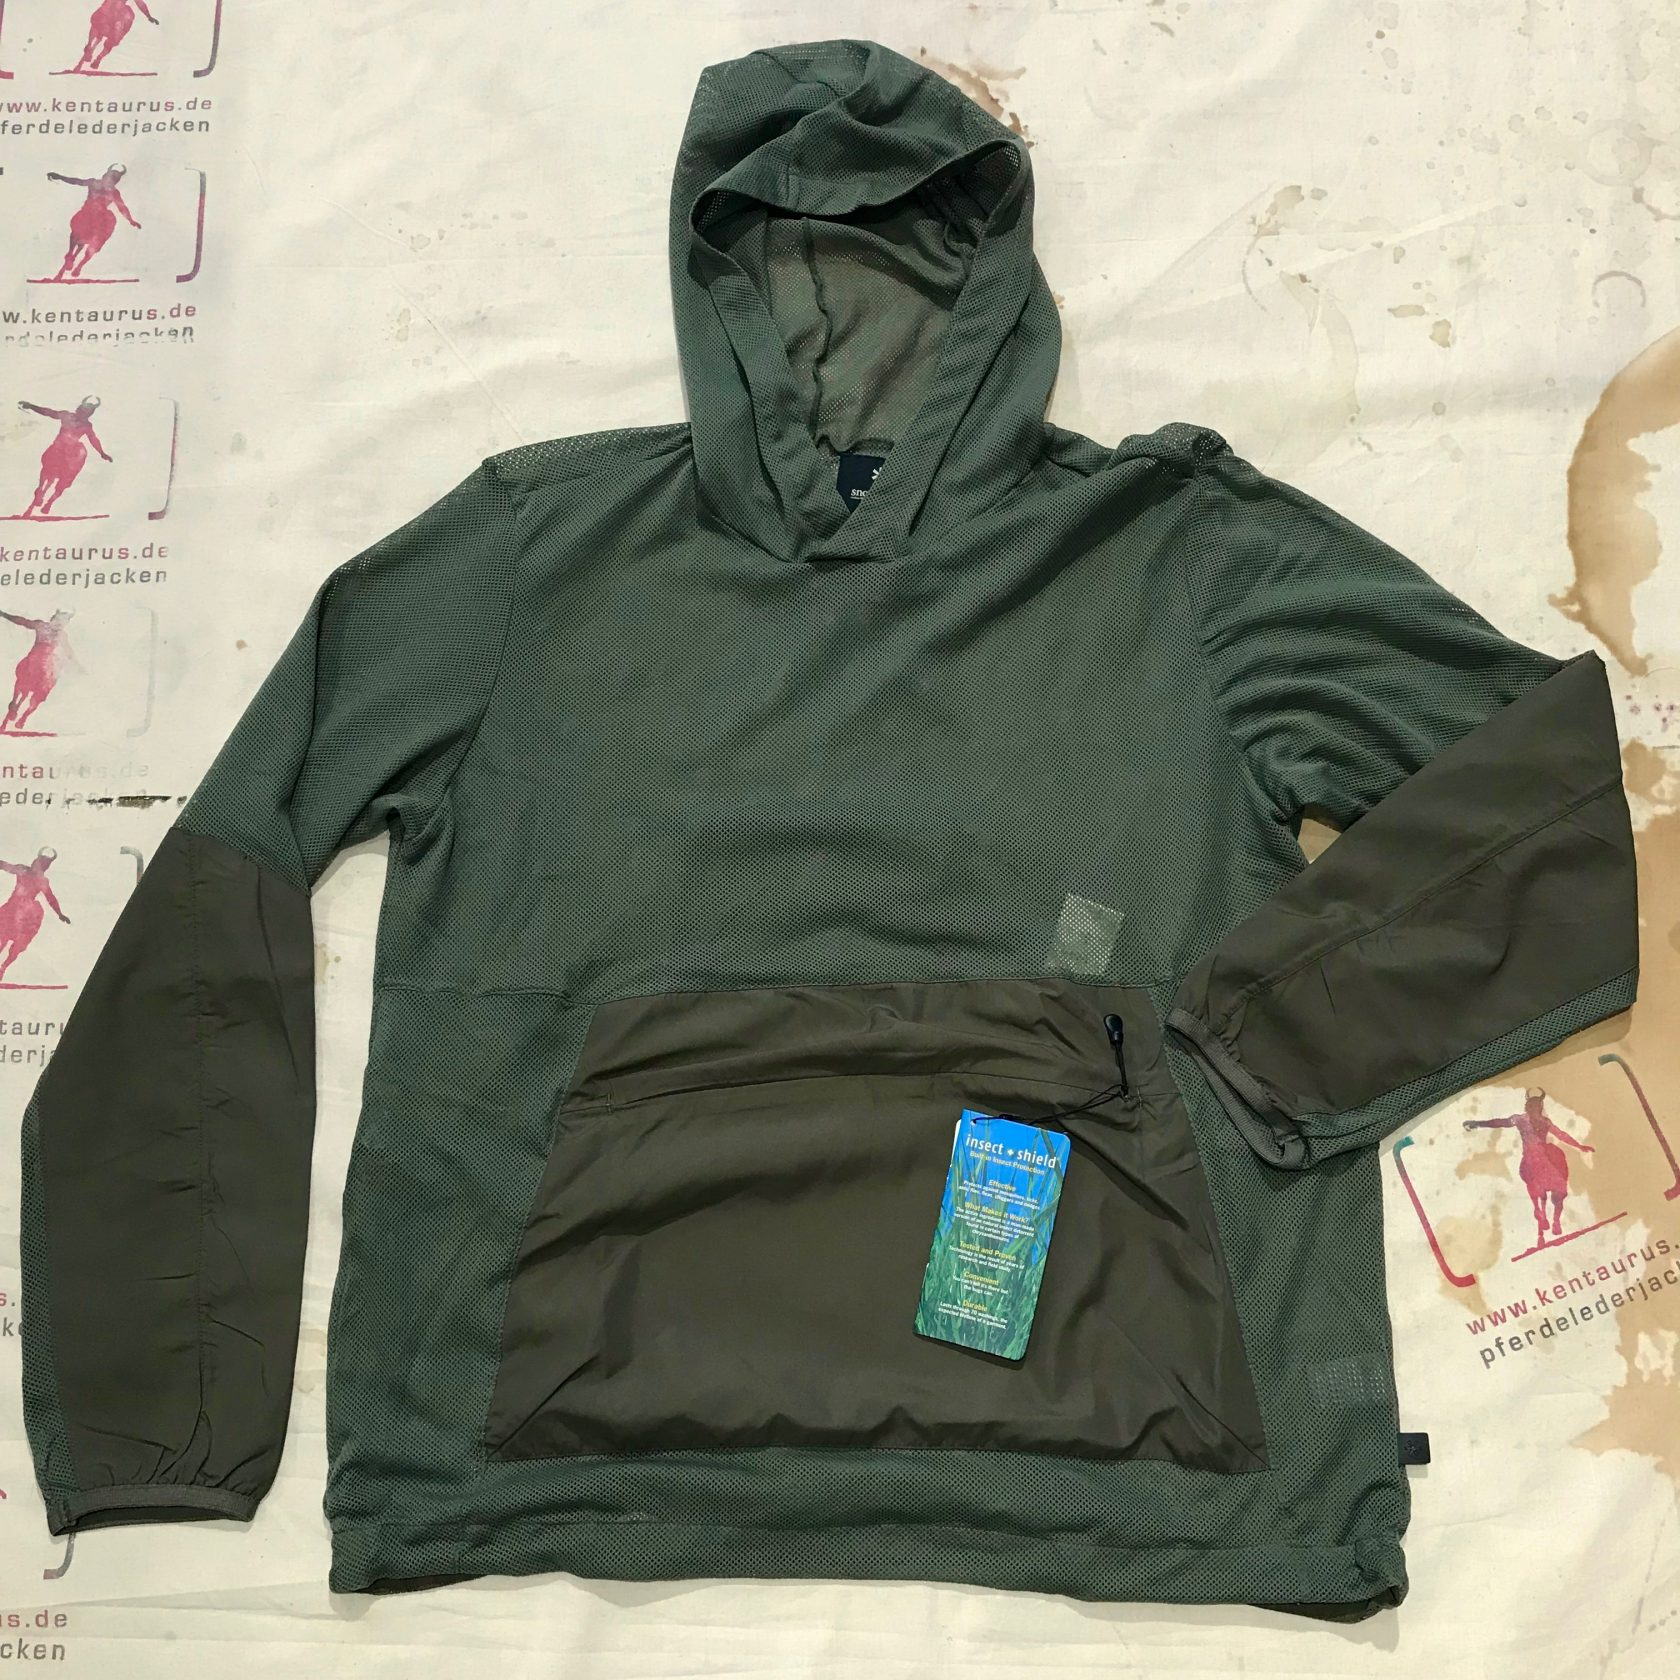 Snow Peak insect shield pullover